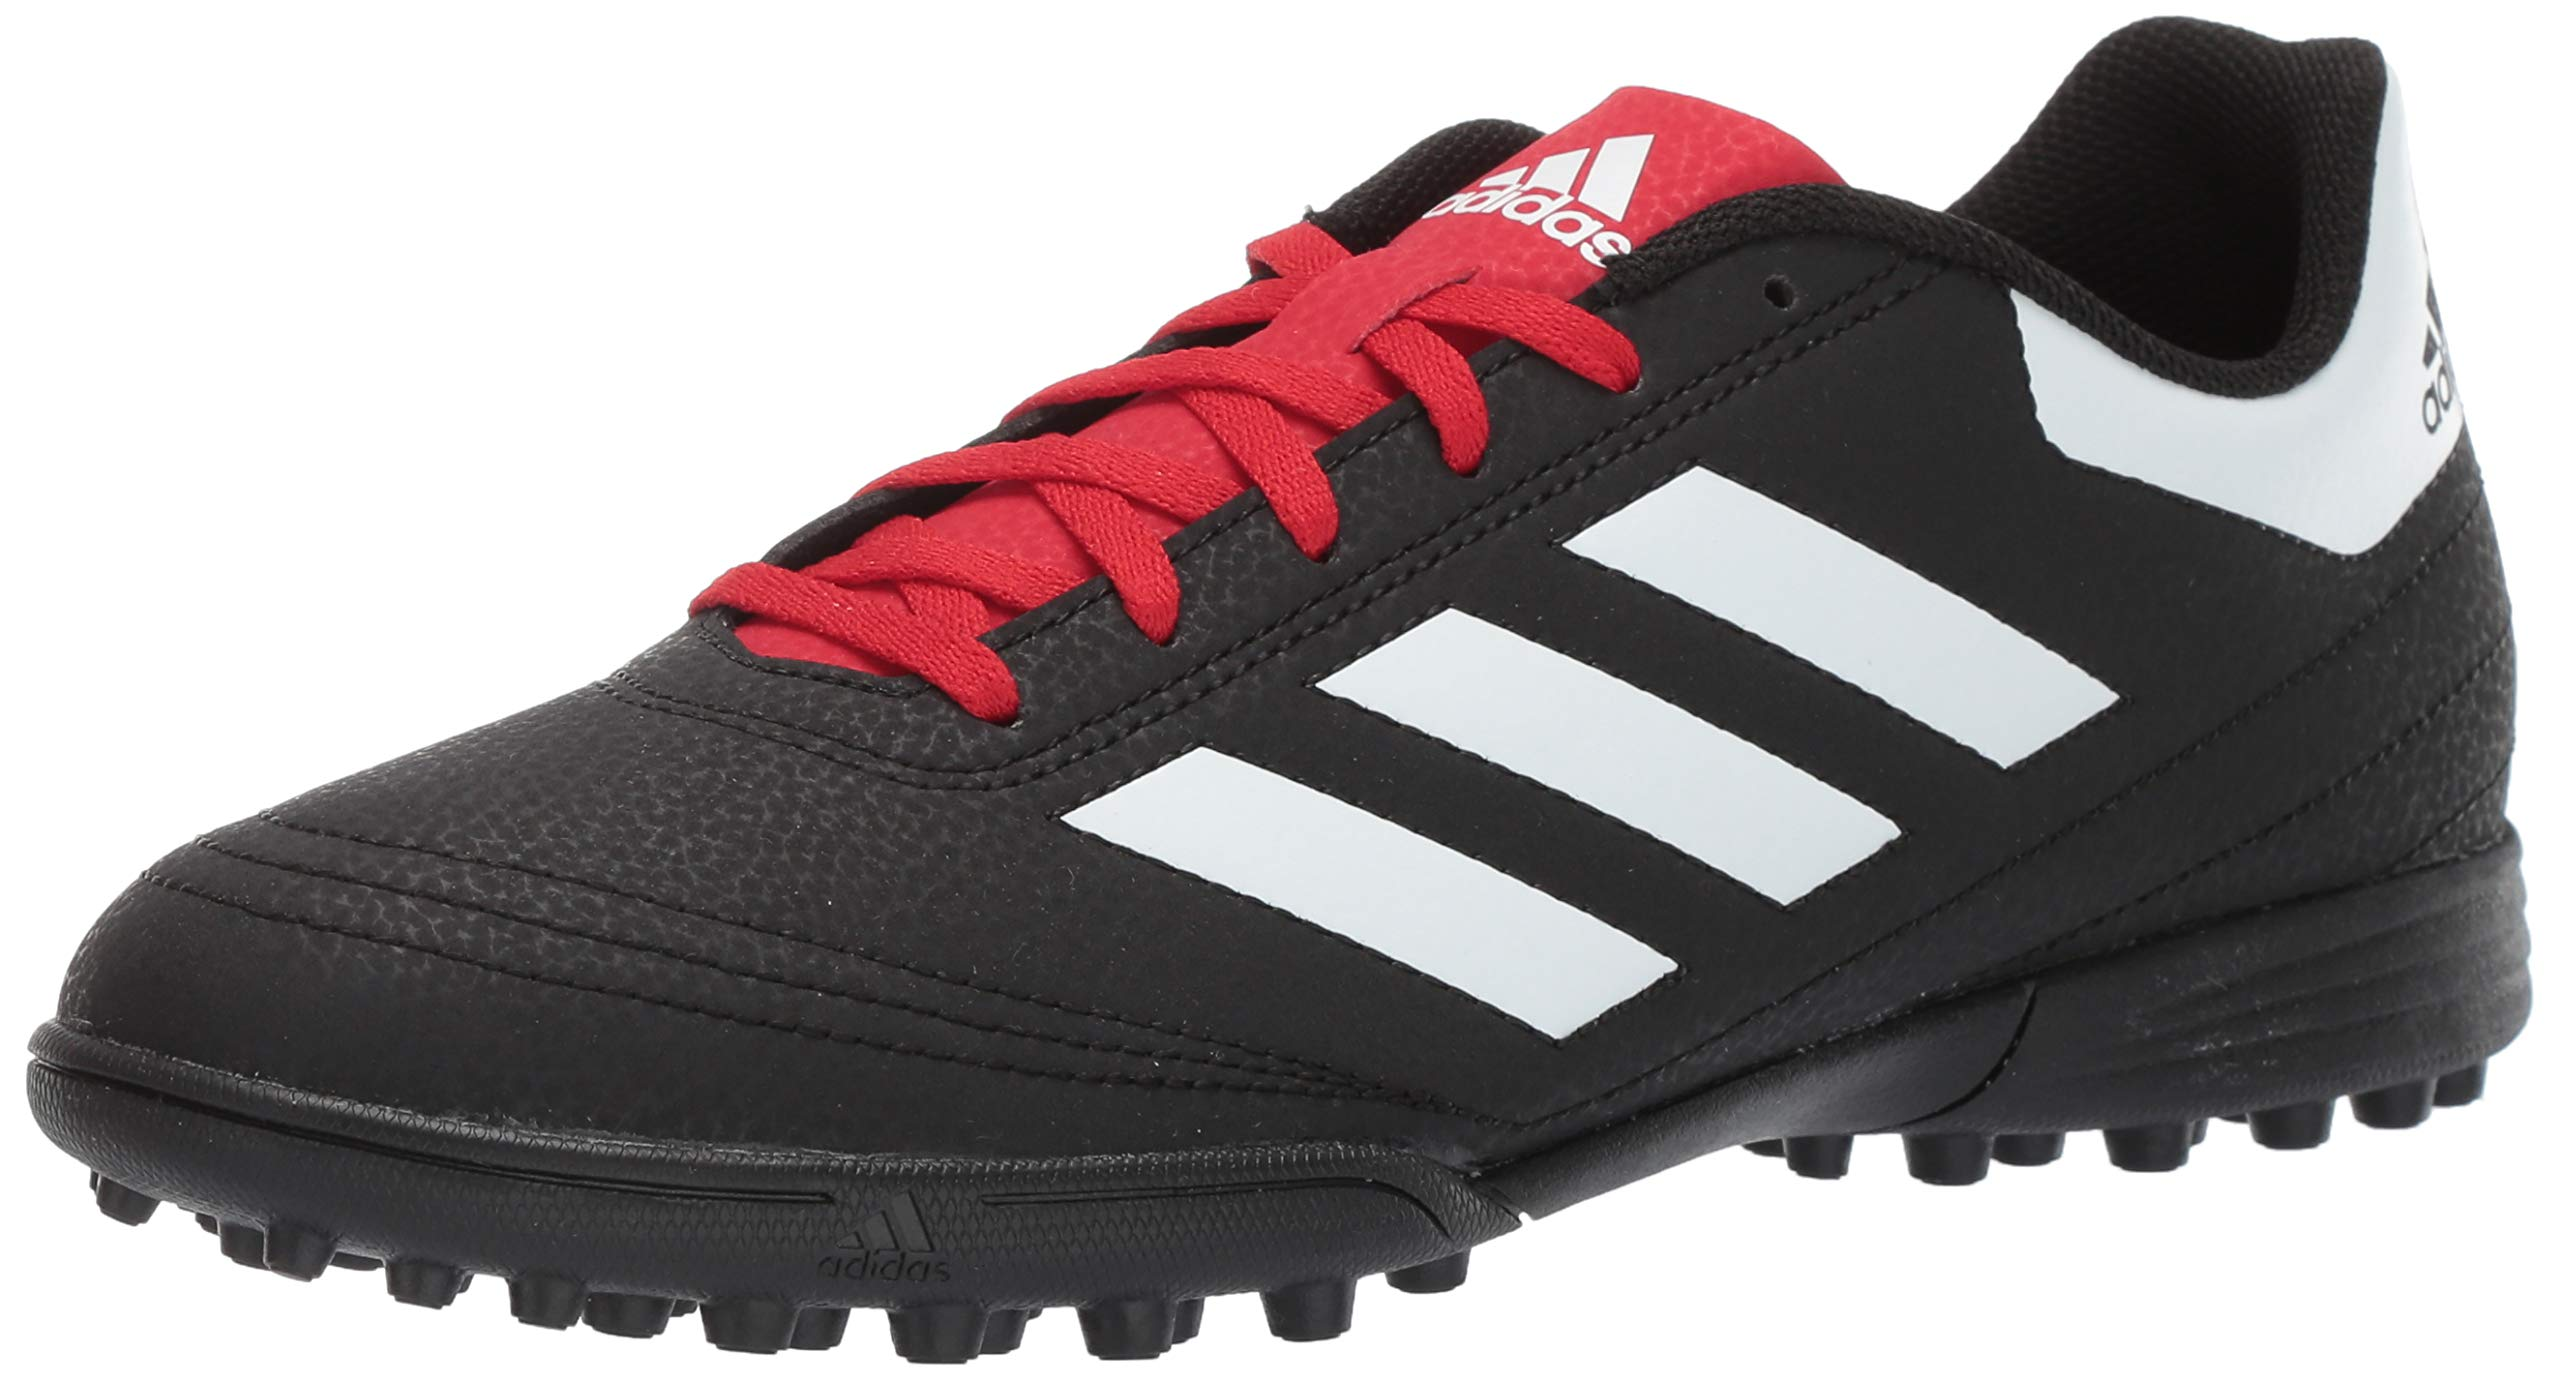 adidas Men's Goletto VI Turf Football Shoe, Black/White/Scarlet, 9 M US by adidas